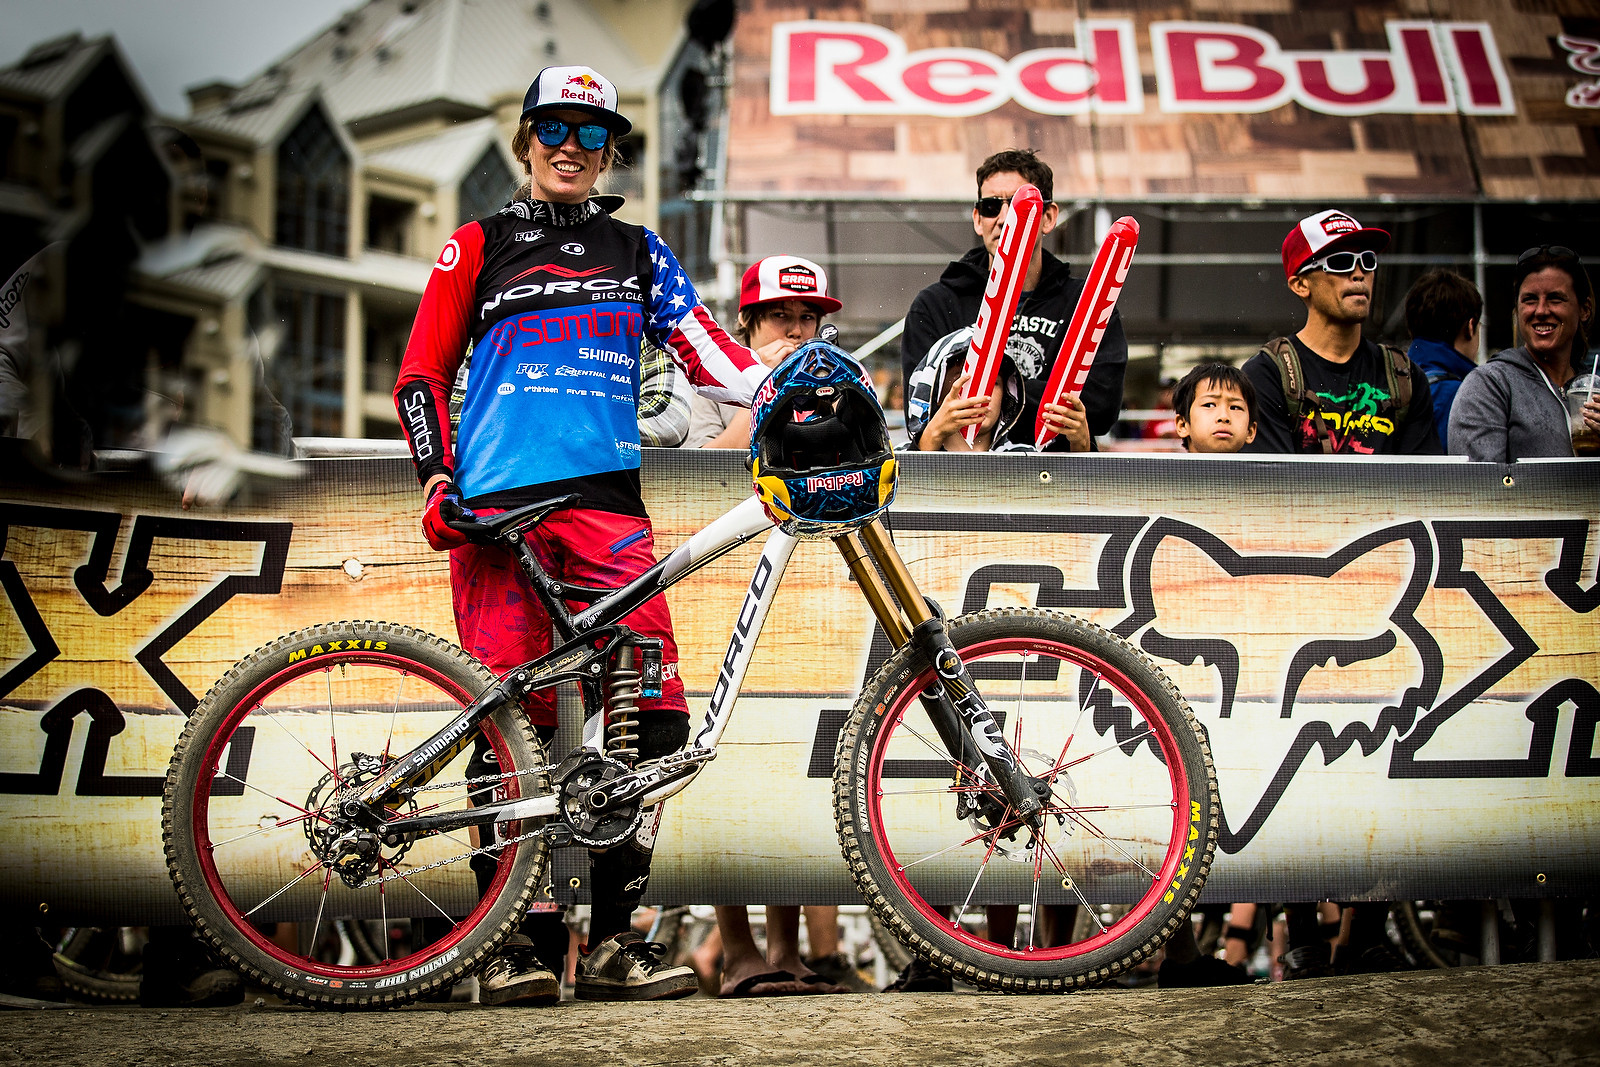 Jill Kintner's Winning Ride from Crankworx Air DH - Crankworx Whistler Air DH - Mountain Biking Pictures - Vital MTB